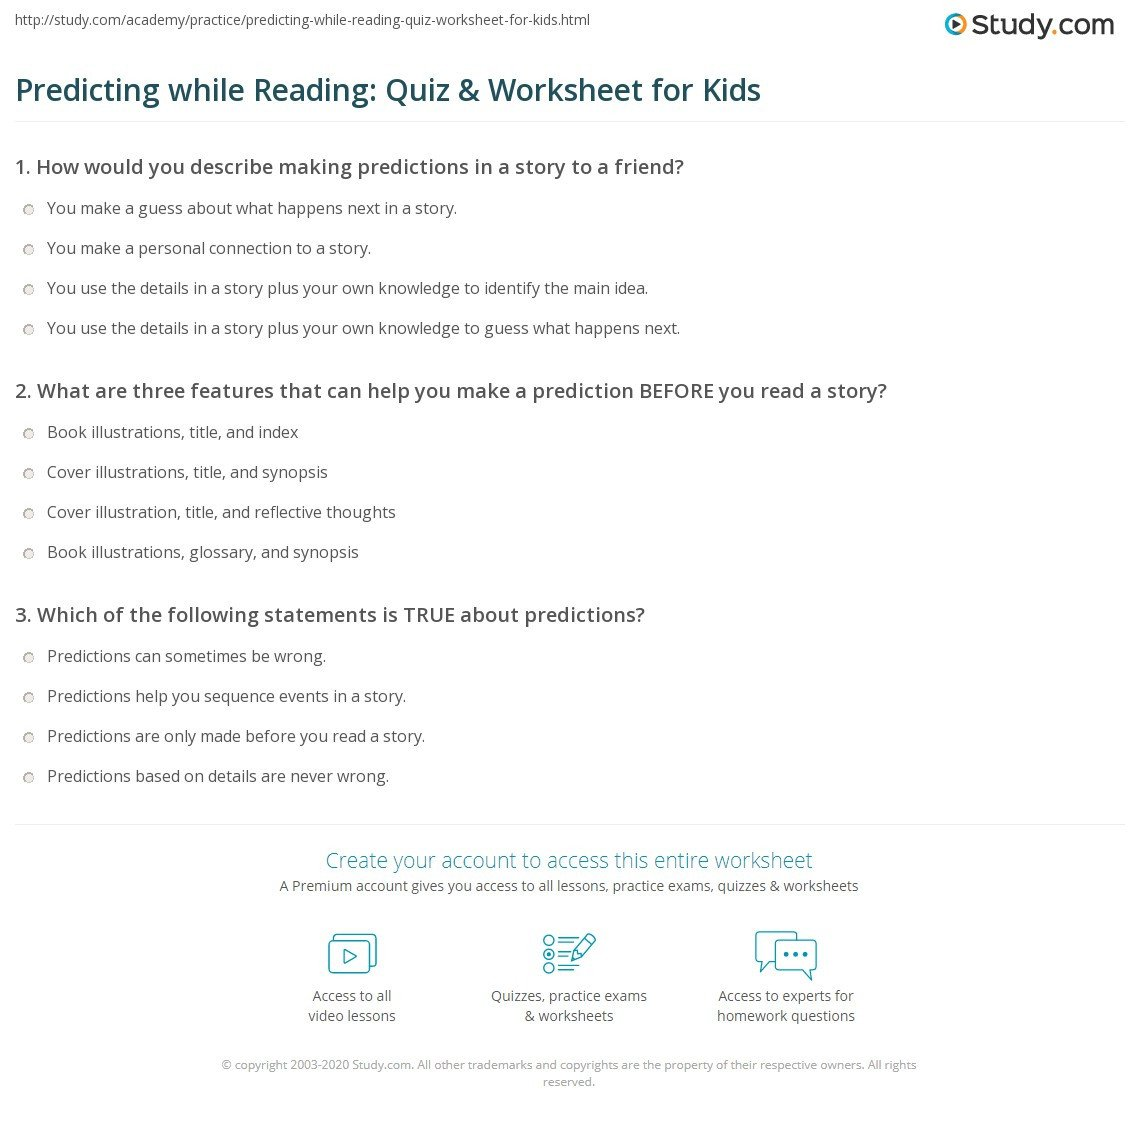 predicting while reading quiz worksheet for kids